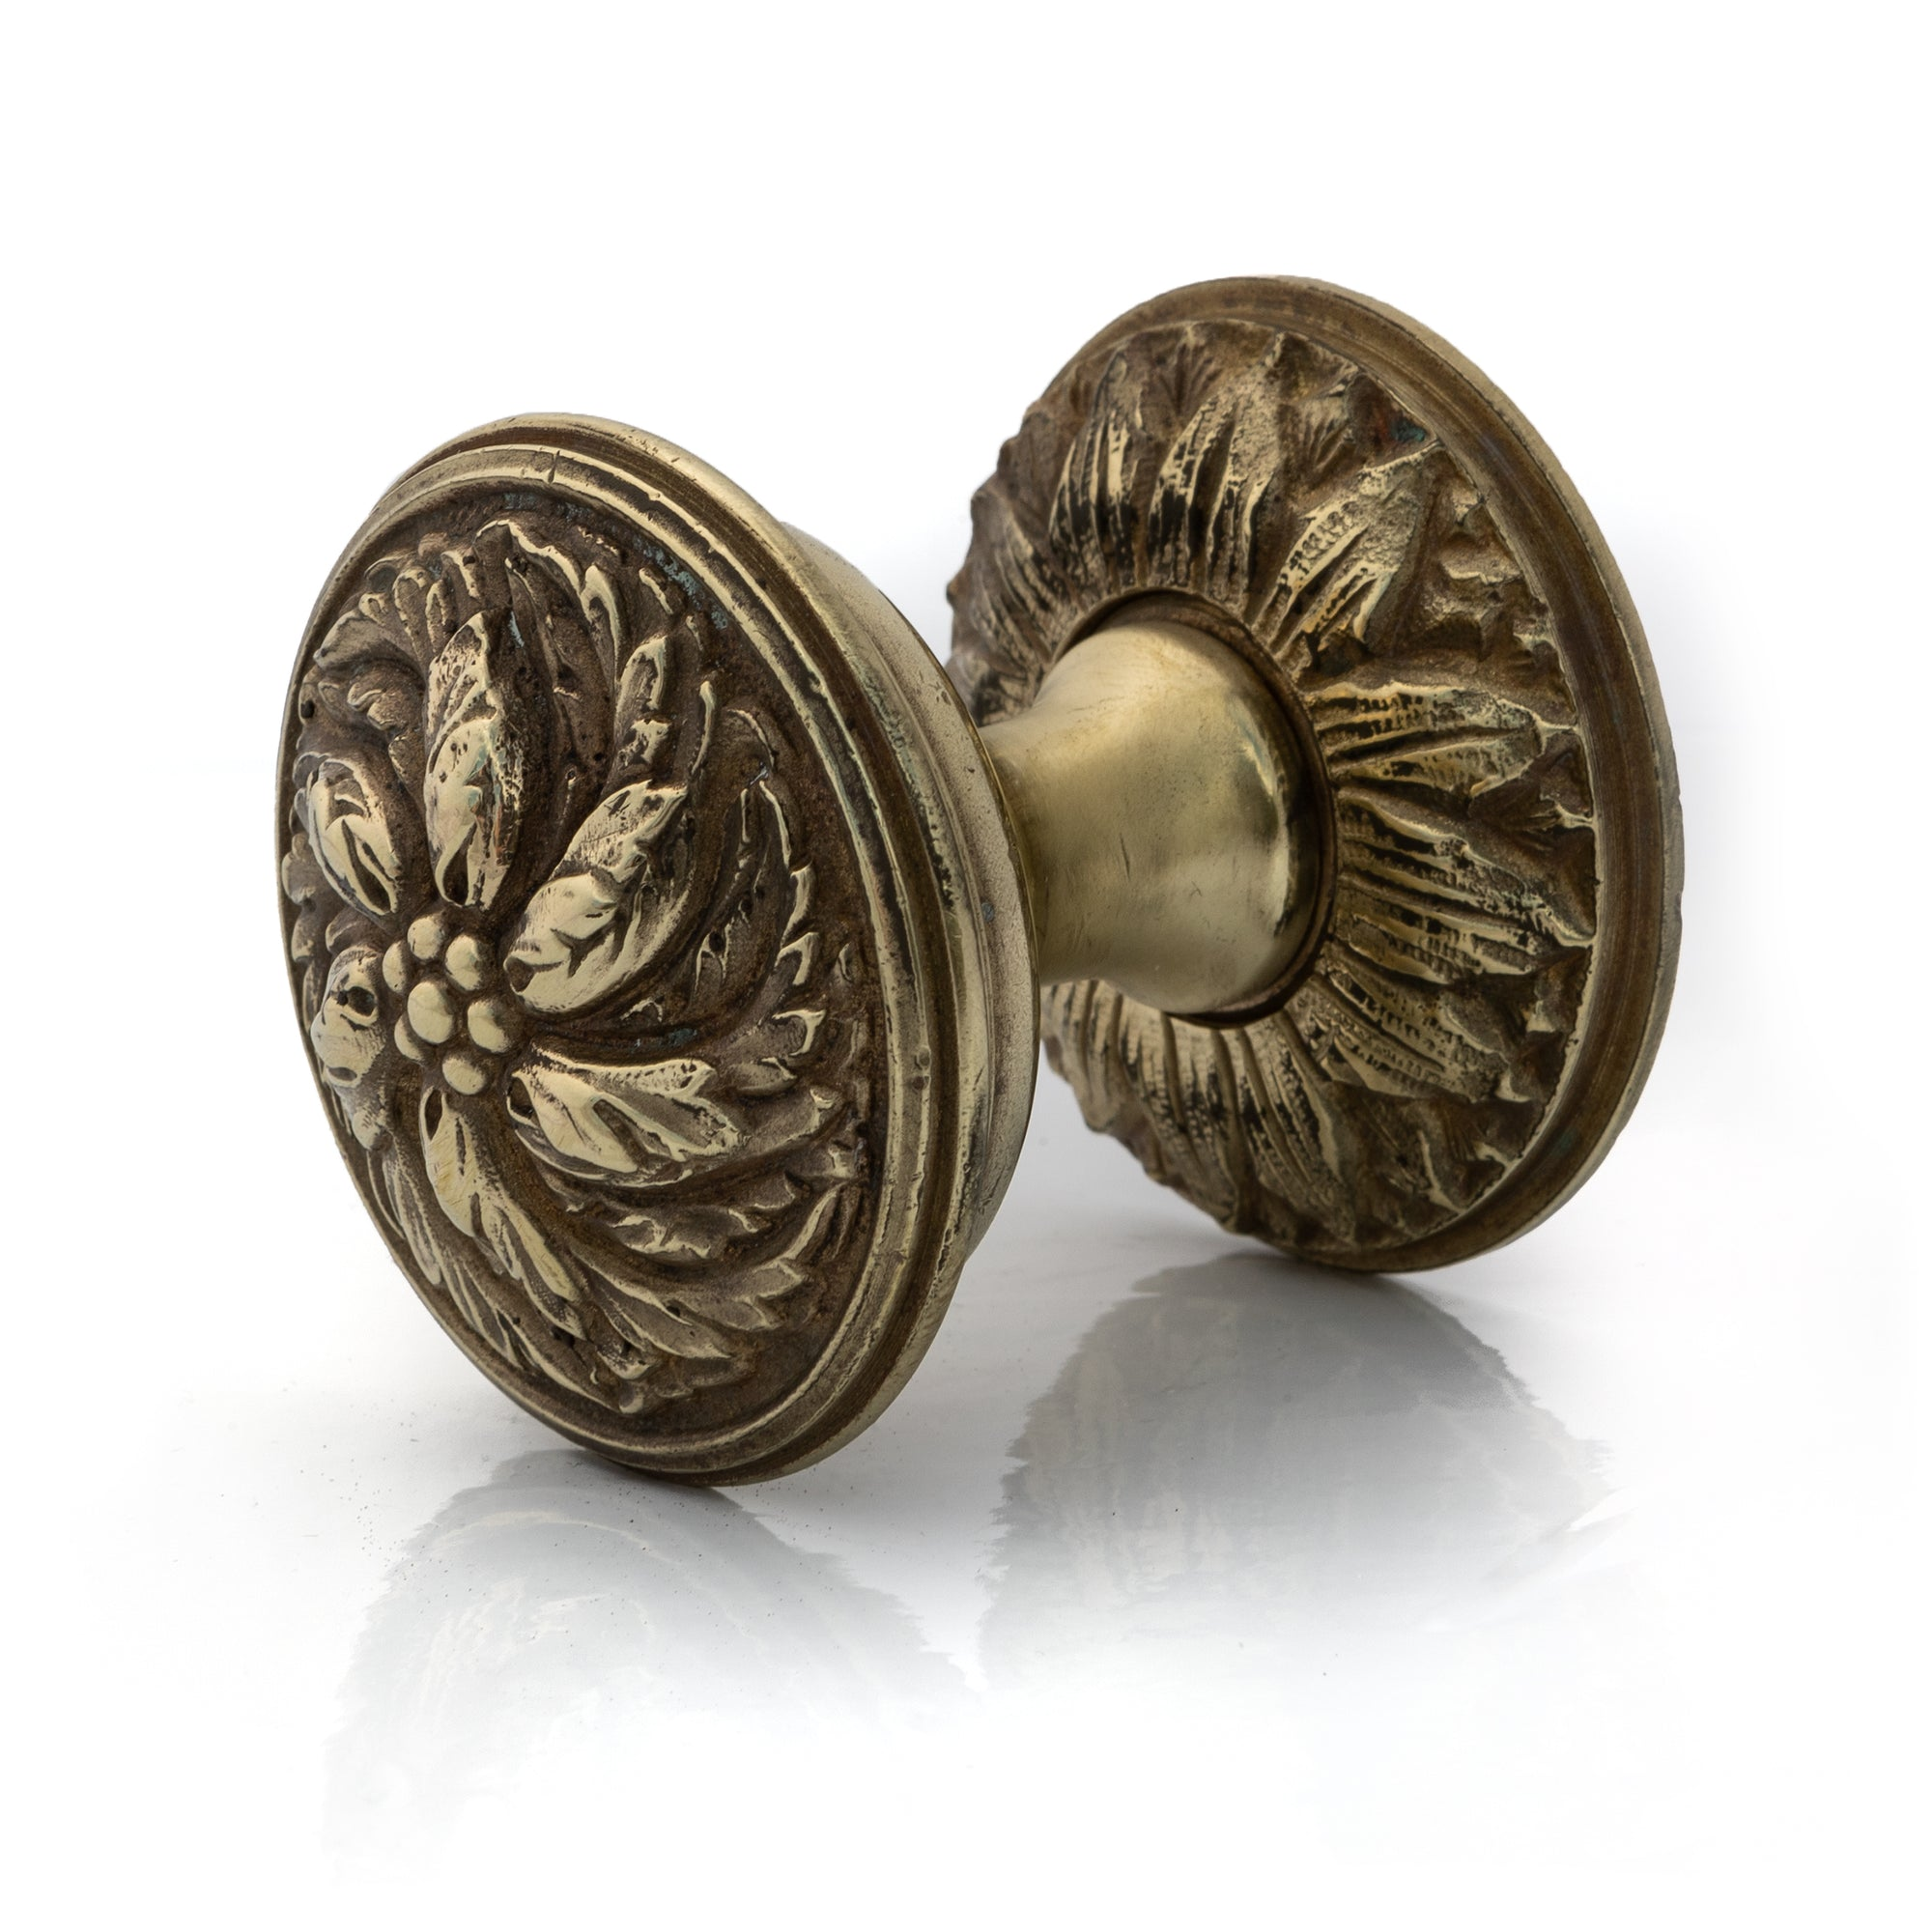 Antique Solid Brass Ornate Floral Door Knob | The Architectural Forum